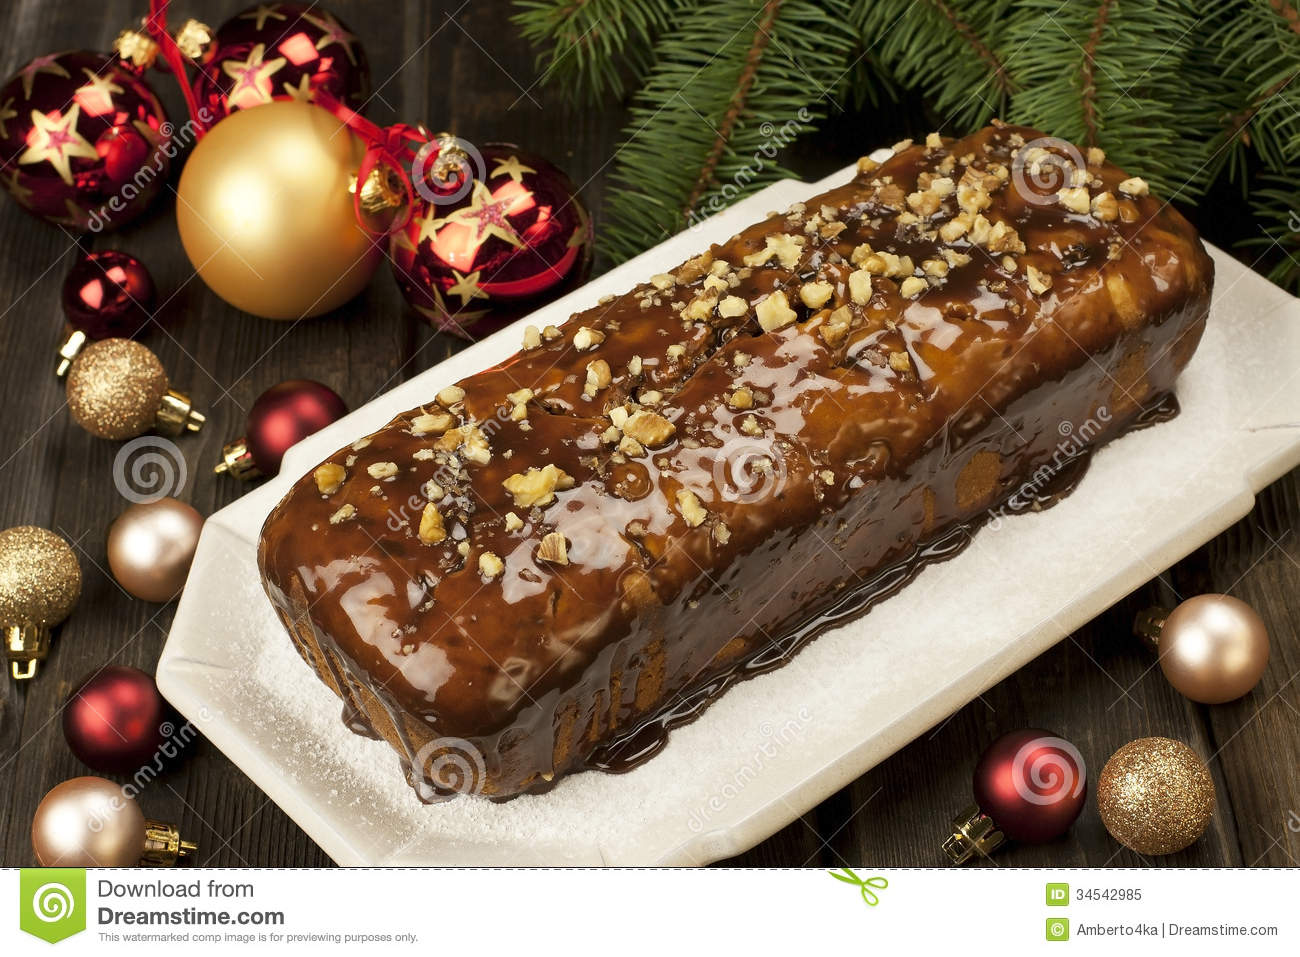 Decorating Christmas Cake Nuts : Christmas cake with decoration royalty free stock photo